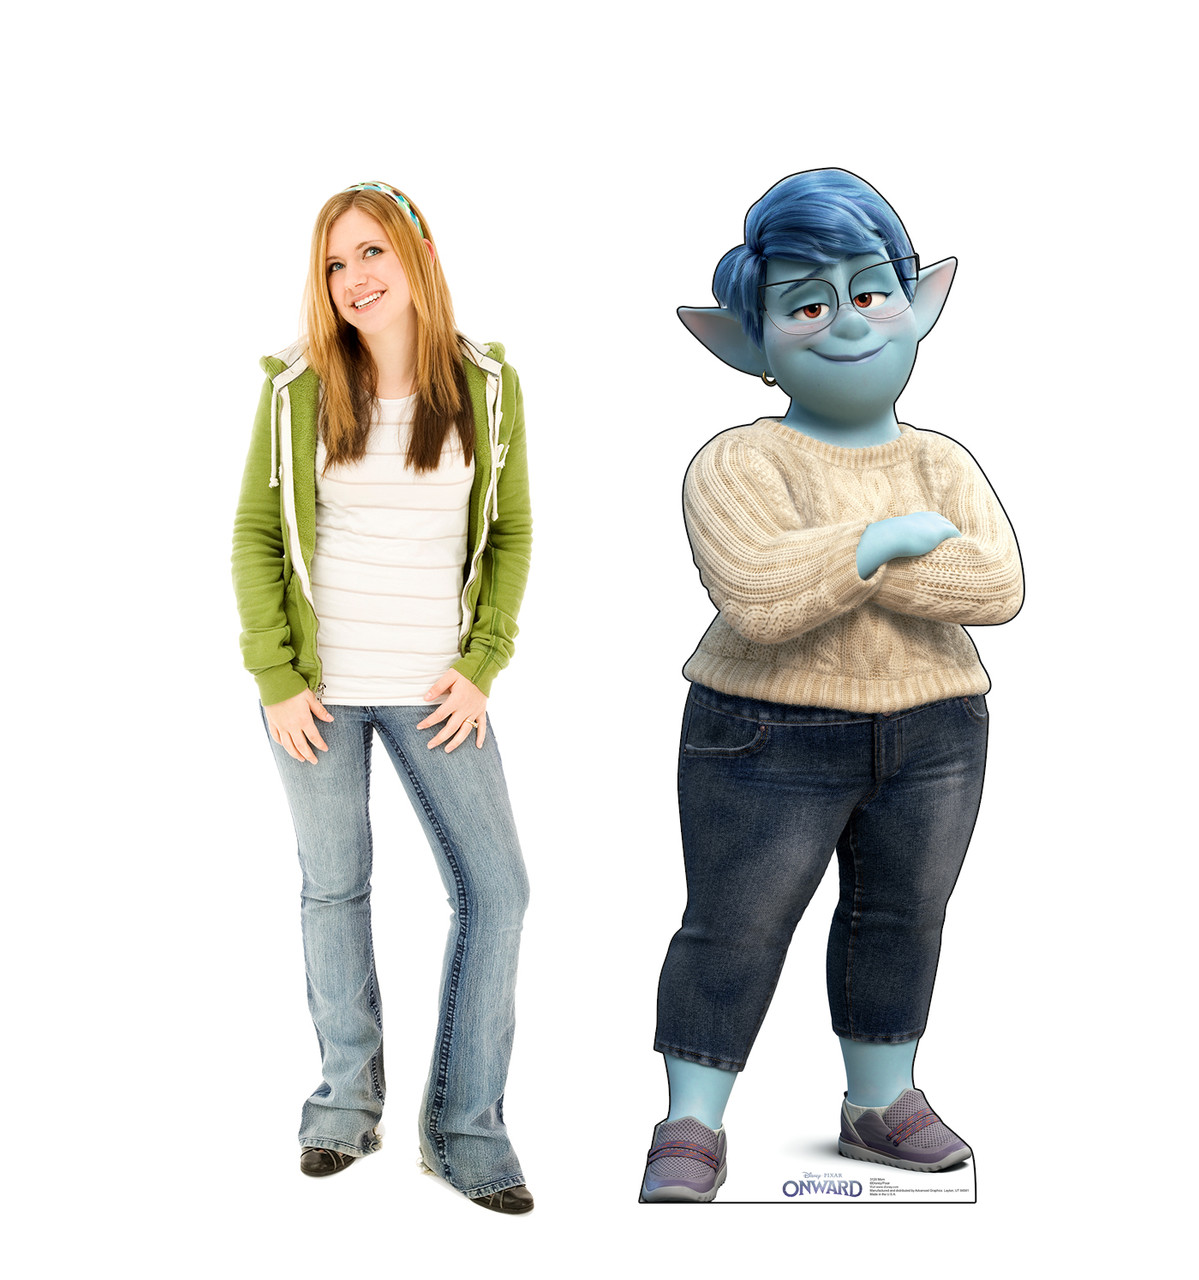 Life-size cardboard standee of Mom from Disney/Pixar's film Onward with model.